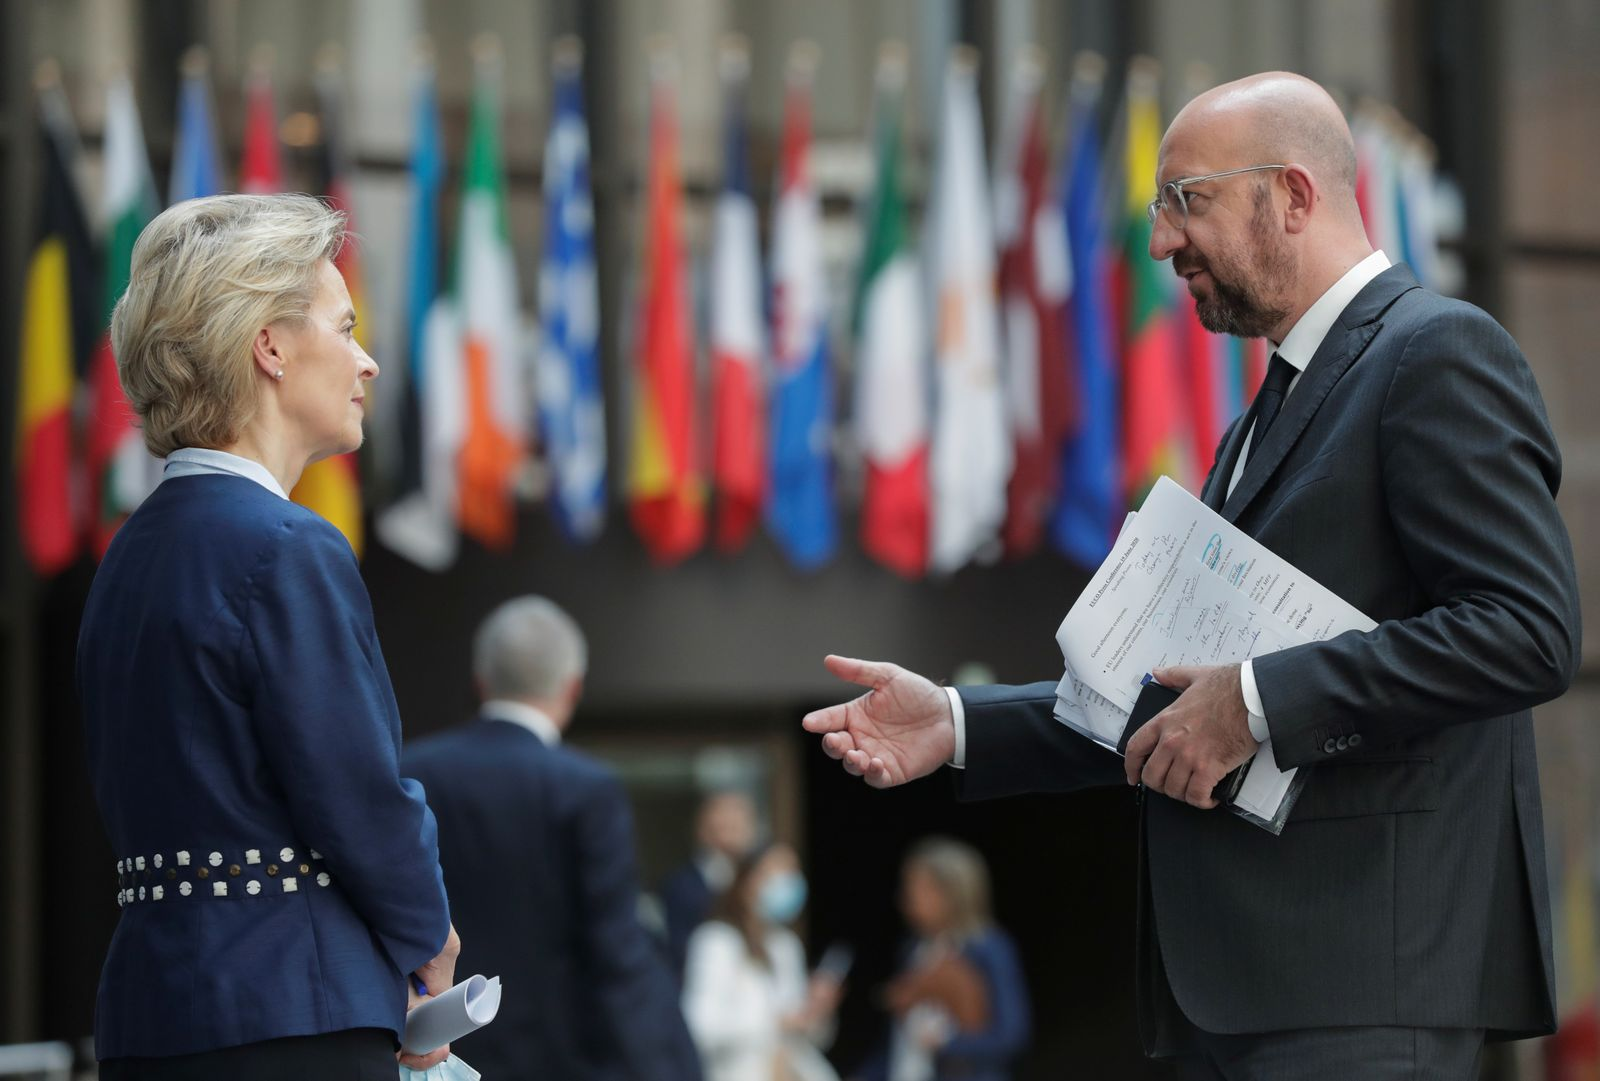 European Commission President Ursula Von Der Leyen and European Council President Charles Michel chat at the end of a news conference following European summit in video conference format, in Brussels